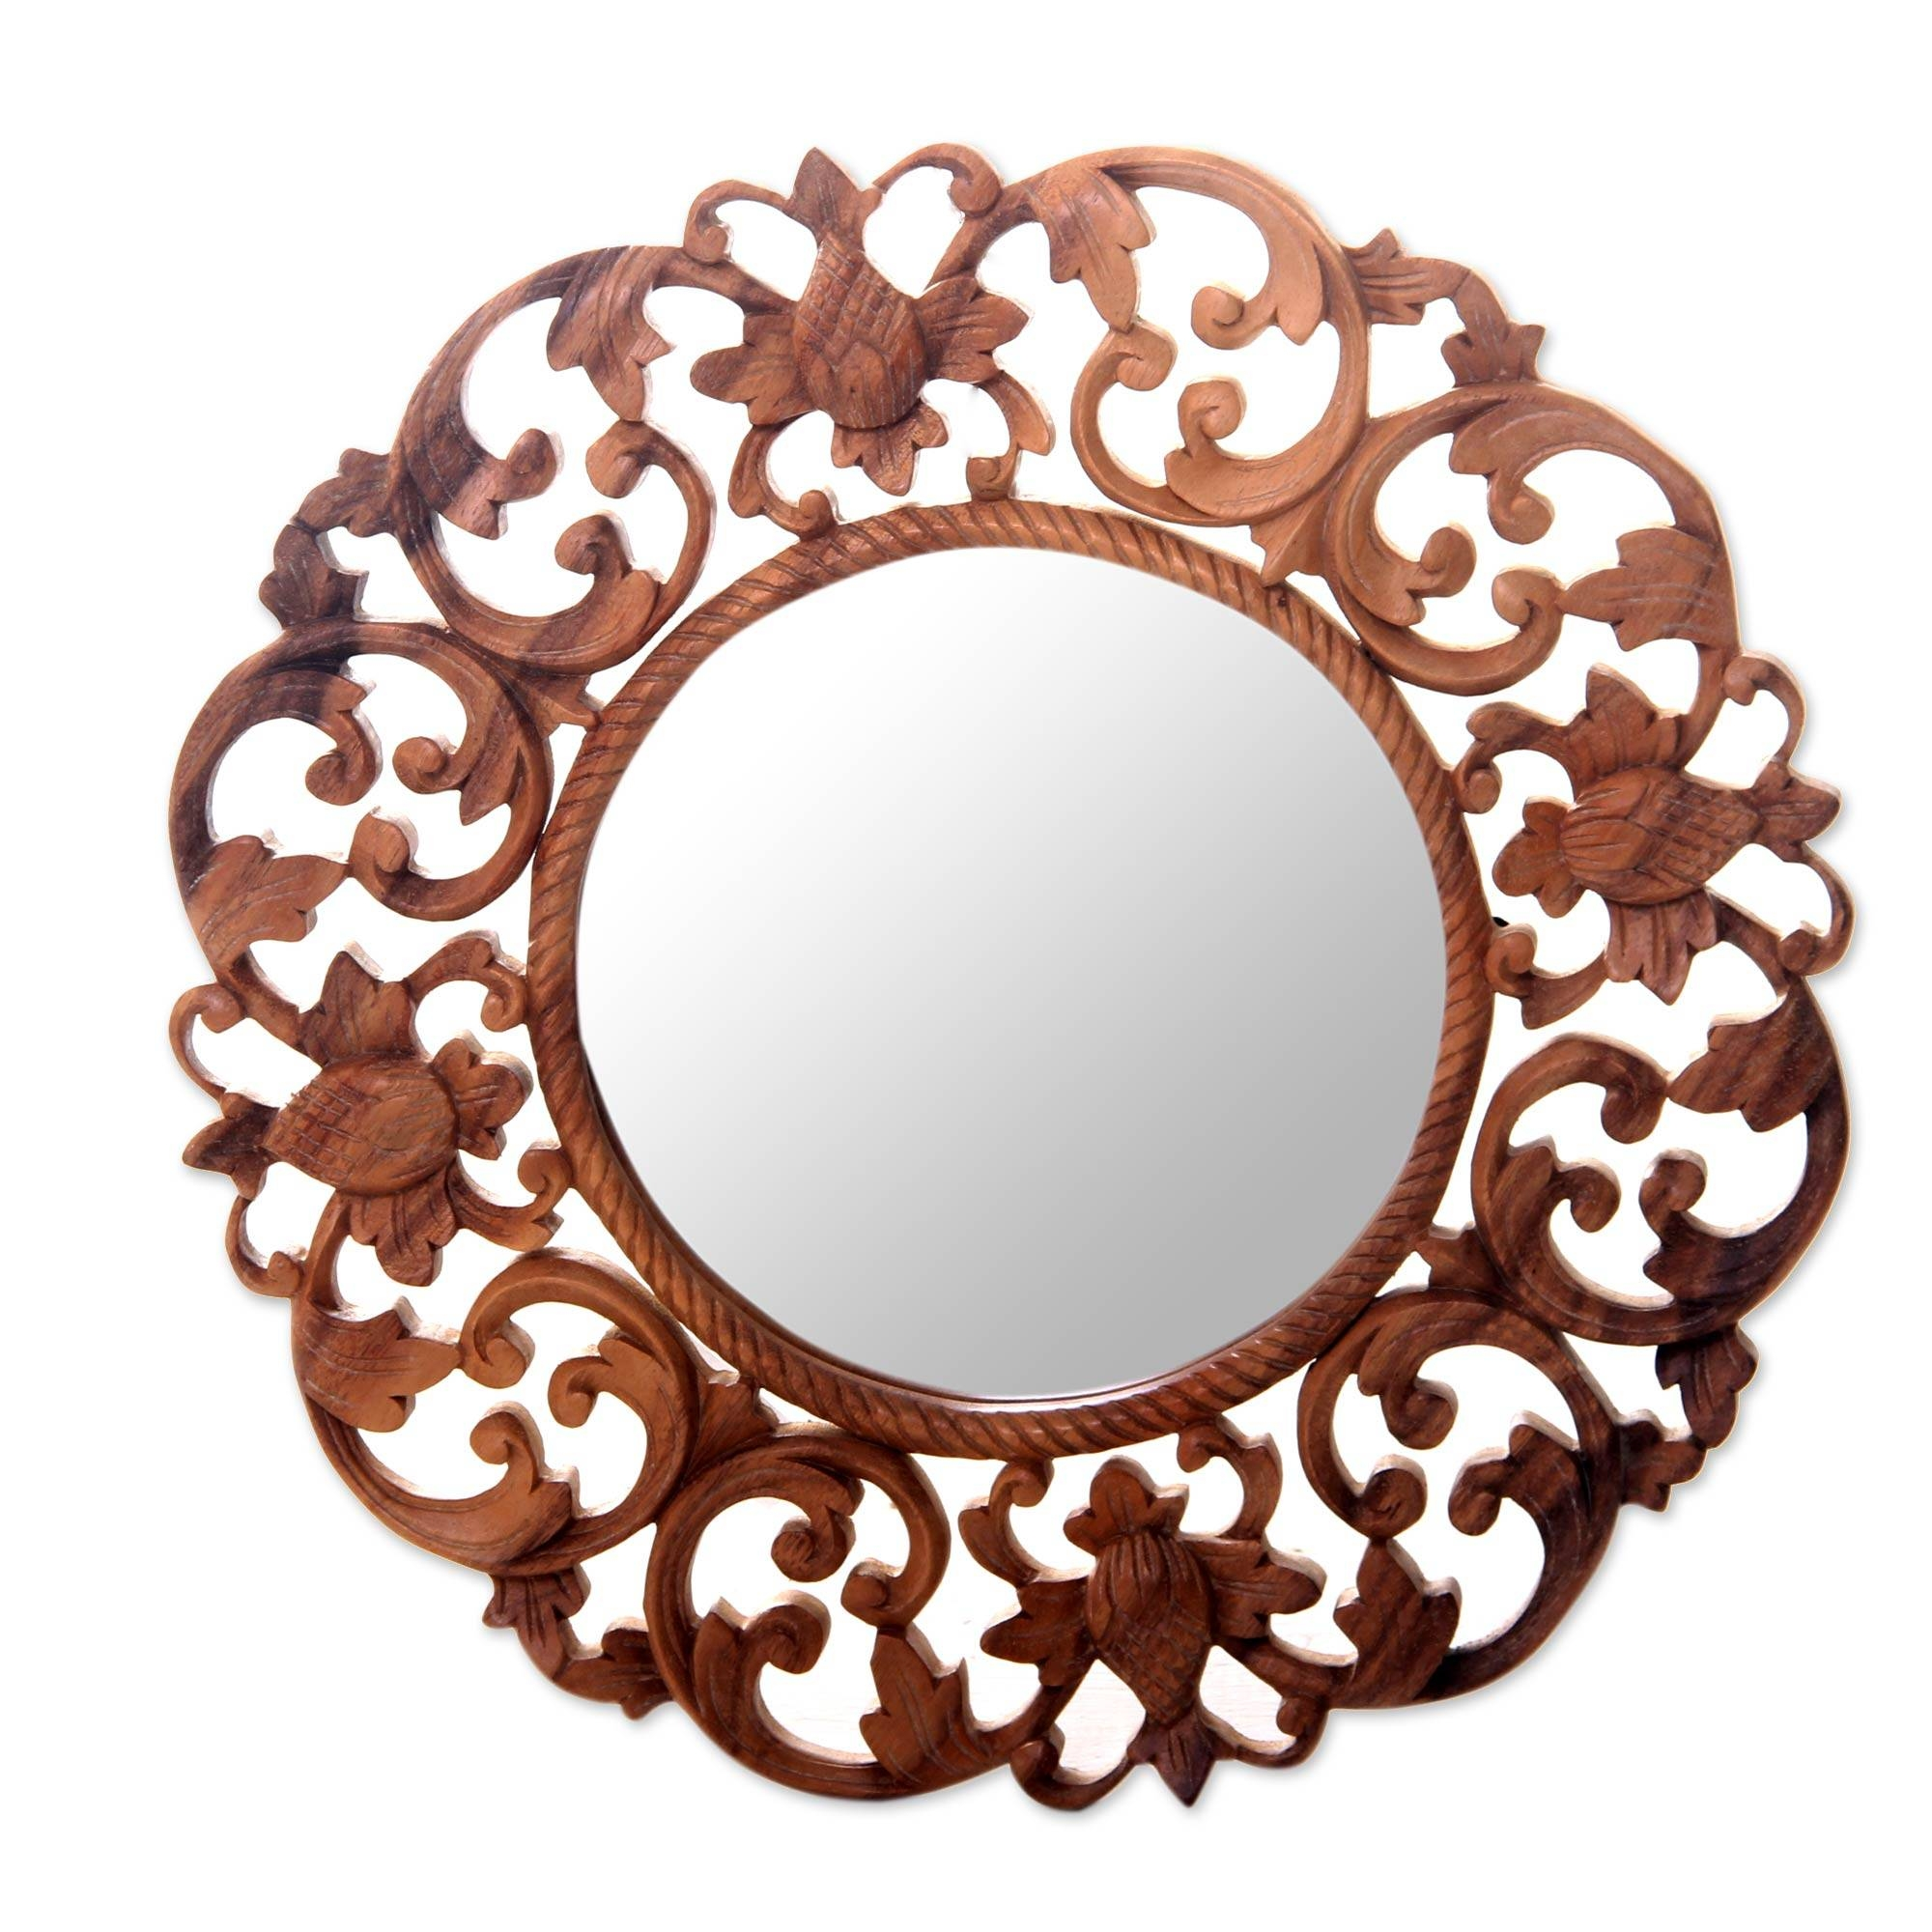 Mirrors - Decorative Global & Antique-Style Wall Mirrors - Novica with regard to Ornate Round Mirrors (Image 15 of 25)